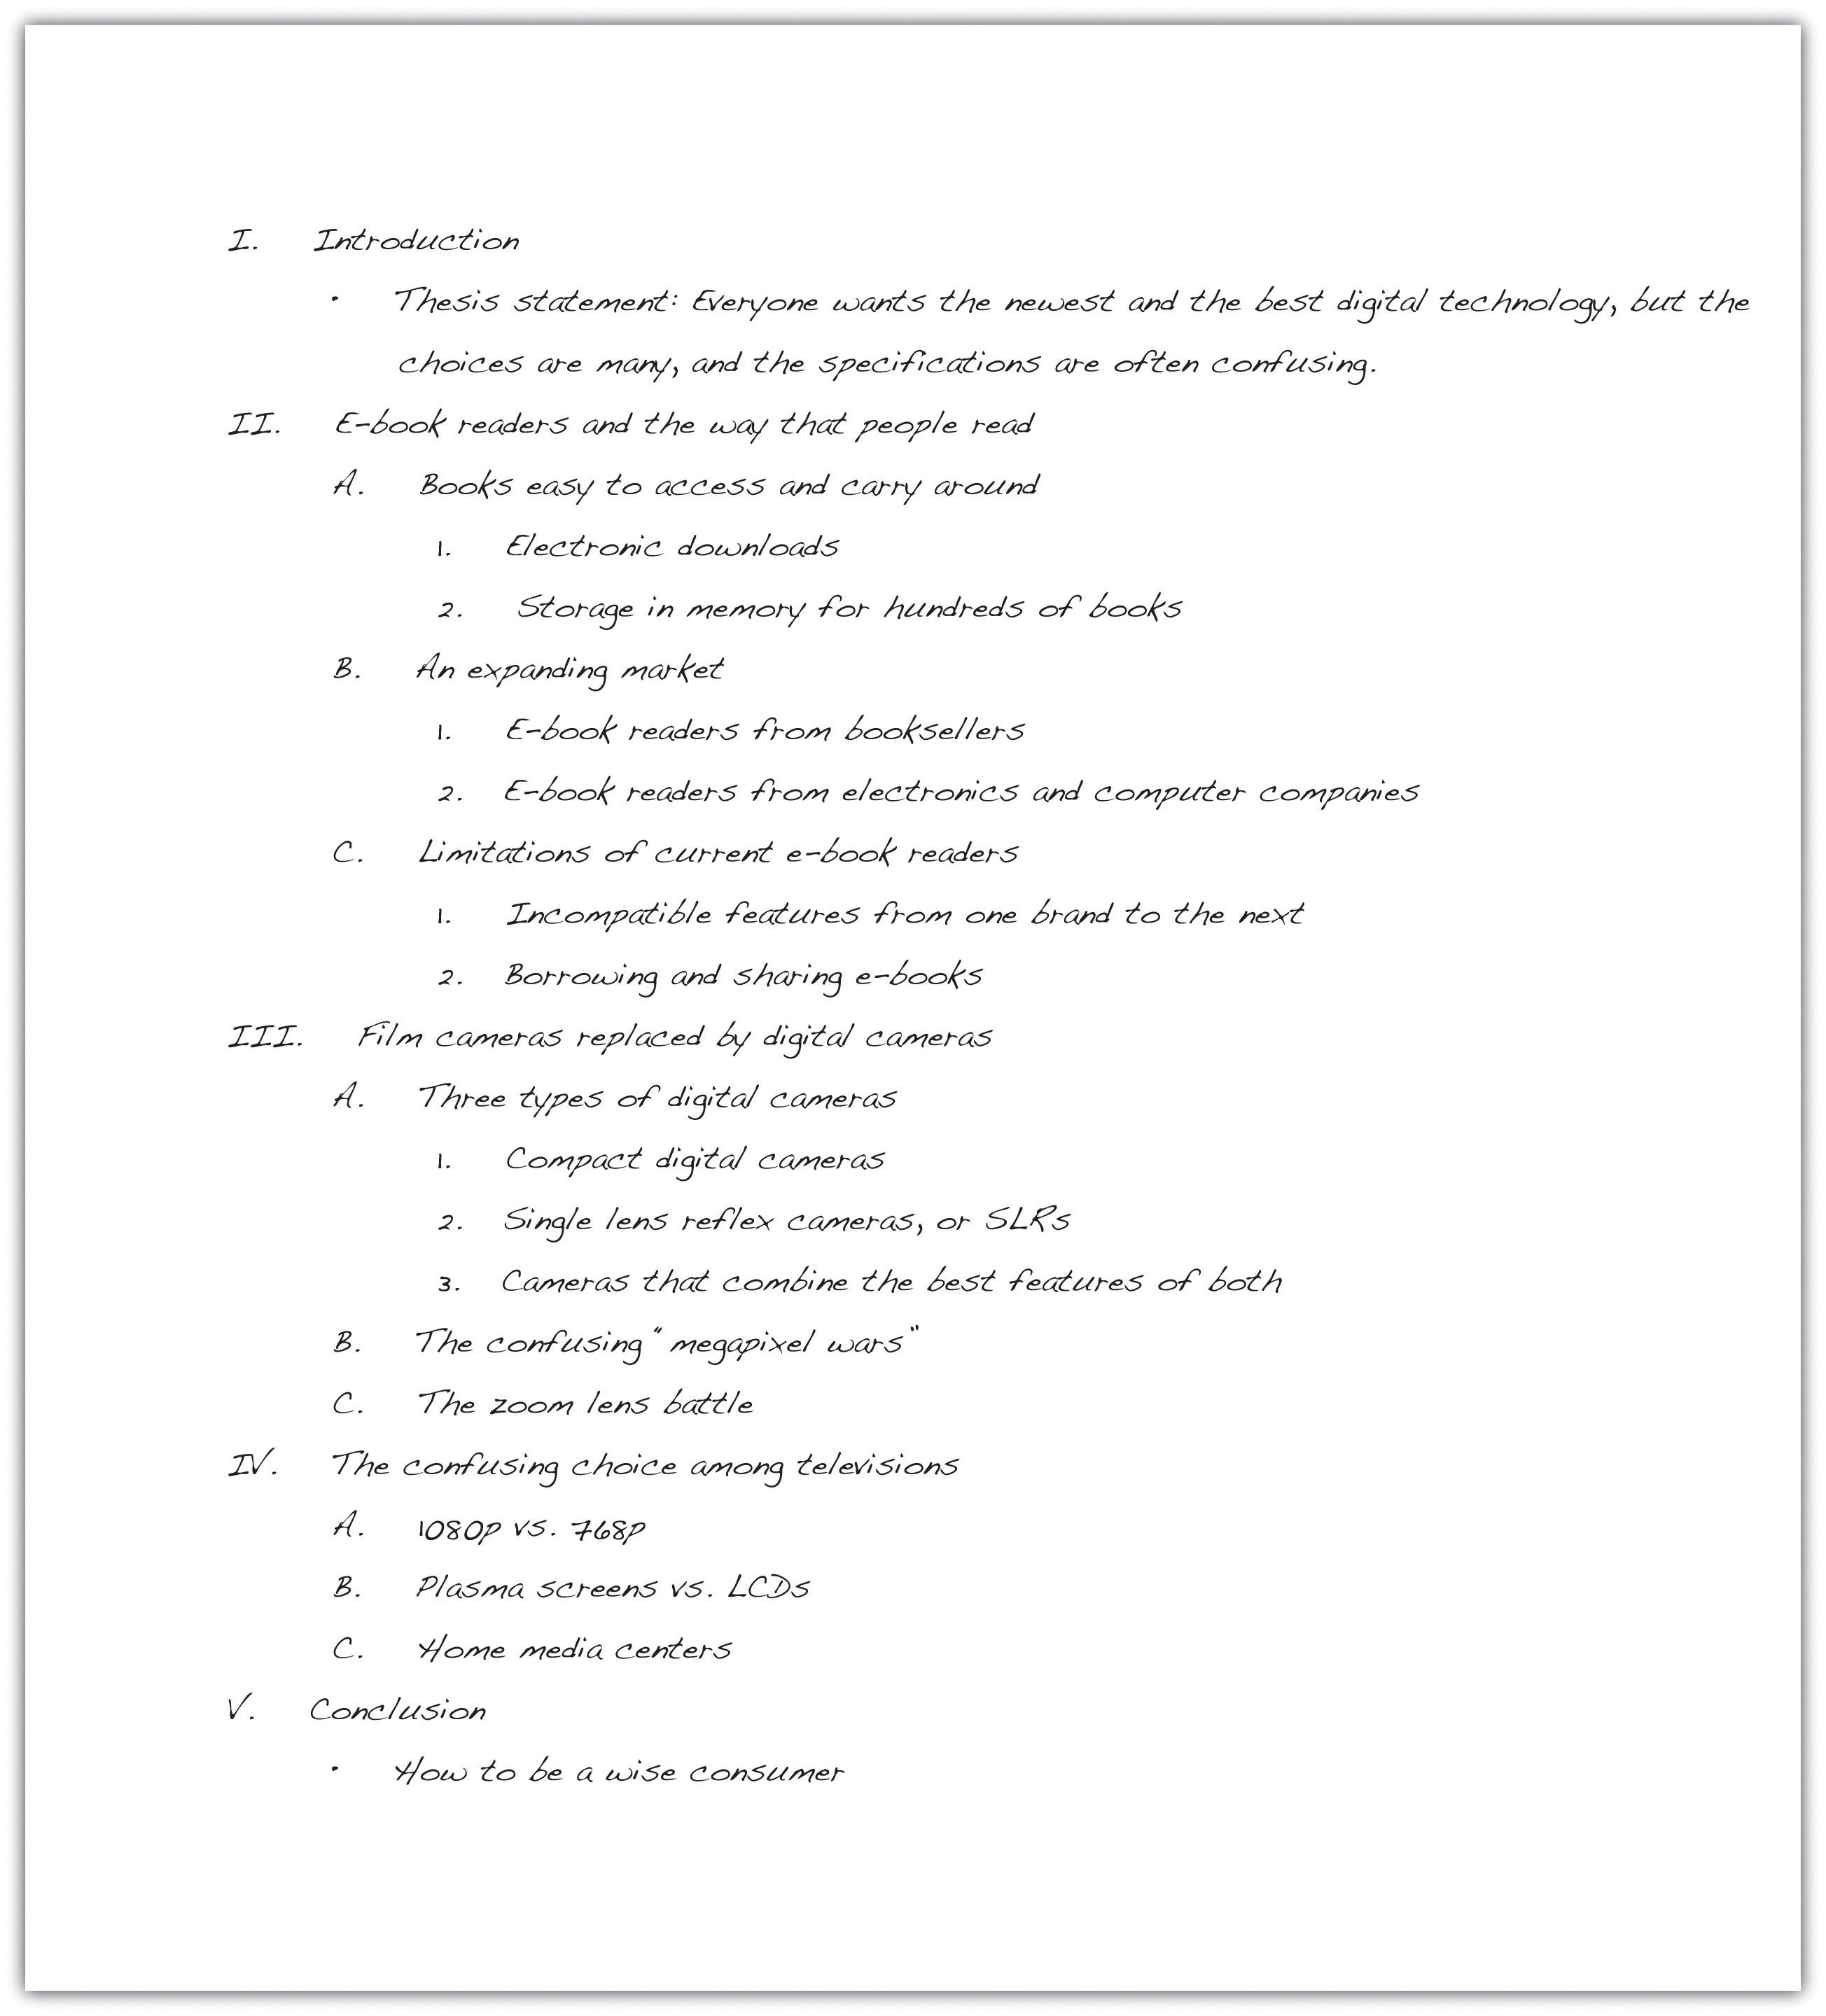 Outline Of Student Paper Showing Roman Numeral Formatting, Followed By A,  B, C